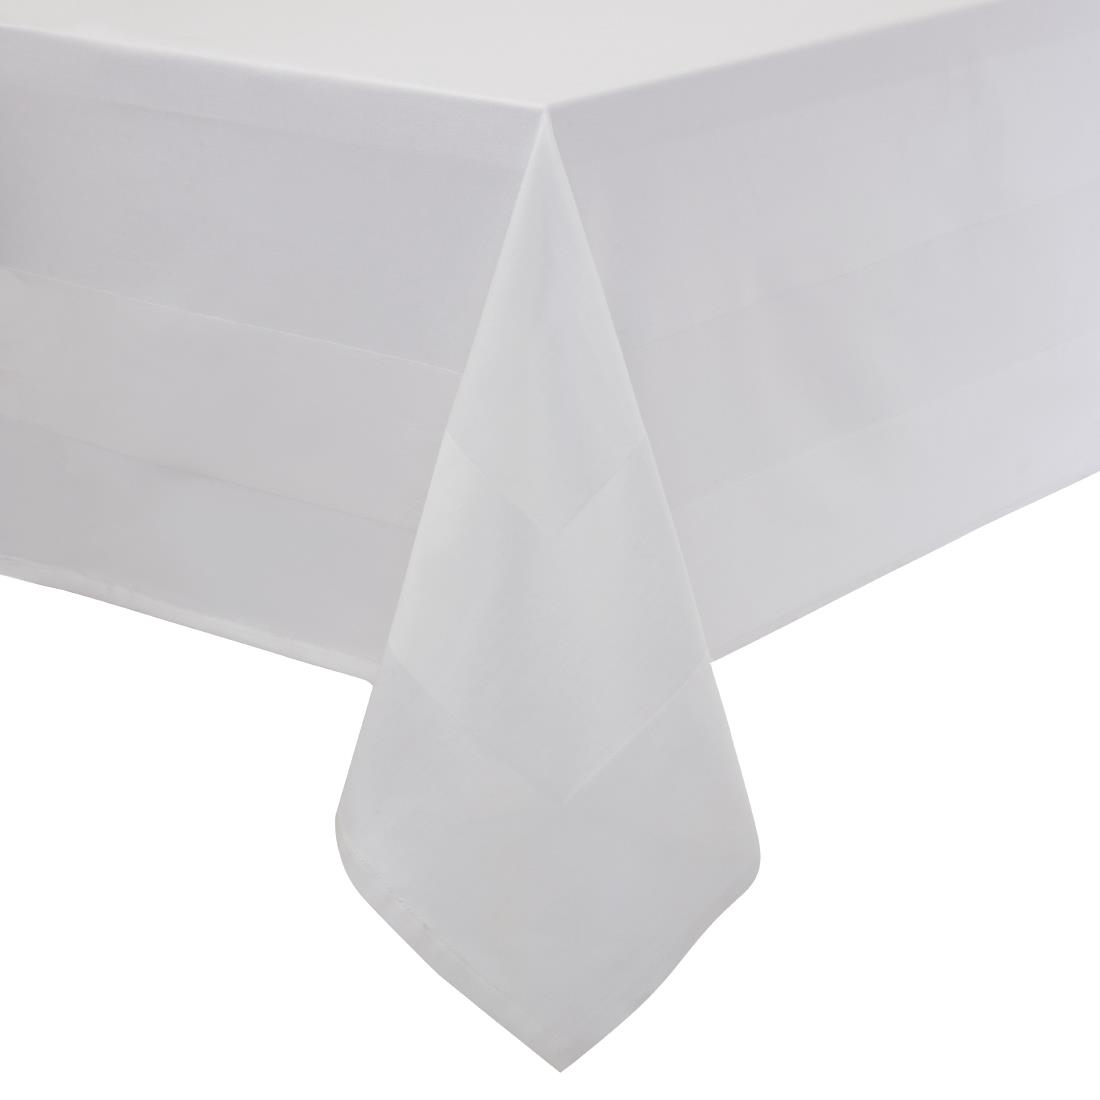 Image of Mitre Luxury Satin Band Tablecloth 1370 x 1780mm